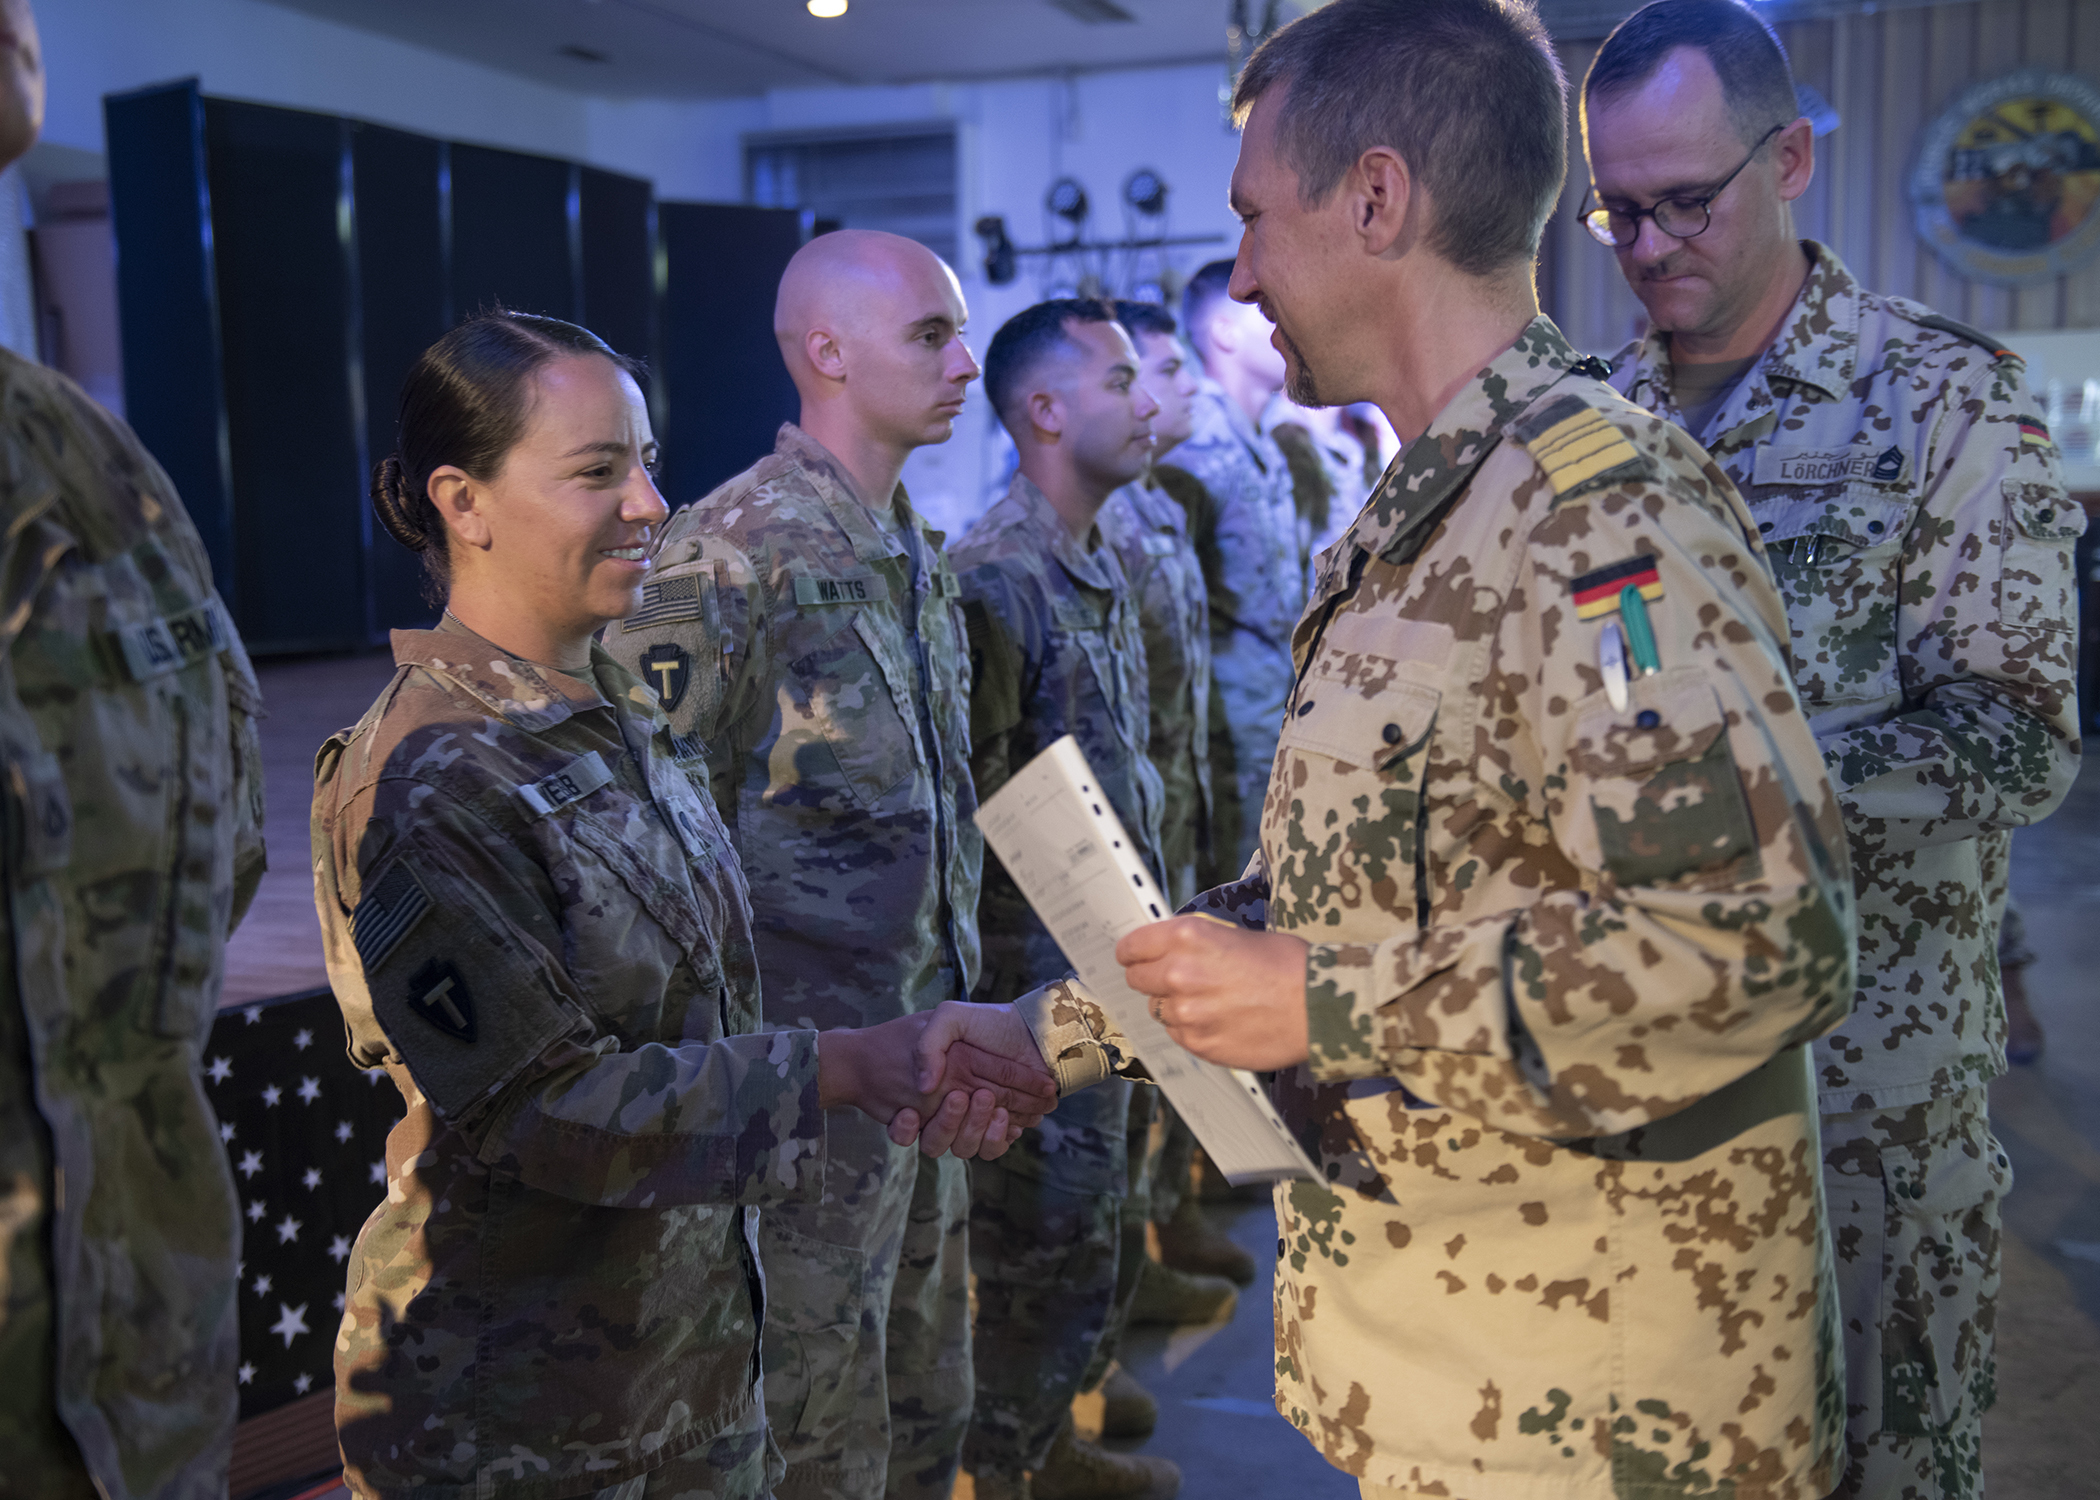 U.S. Army Spc. Natalia Webb, a medical technician from 1-141 Infantry Regiment, Task Force Alamo, Texas National Guard, assigned to Combined Joint Task Force-Horn of Africa, and the only female to earn the German Armed Forces Badge for military proficiency (GAFB) this rotation, accepter her GAFB at an awards ceremony at Camp Lemonnier, Djibouti, Jan. 22, 2019. Competing for the badge offered a unique opportunity to Soldiers and worked as an information exchange between the U.S. and Germany militaries. (U.S. Air Force photo by Tech. Sgt. Shawn Nickel)